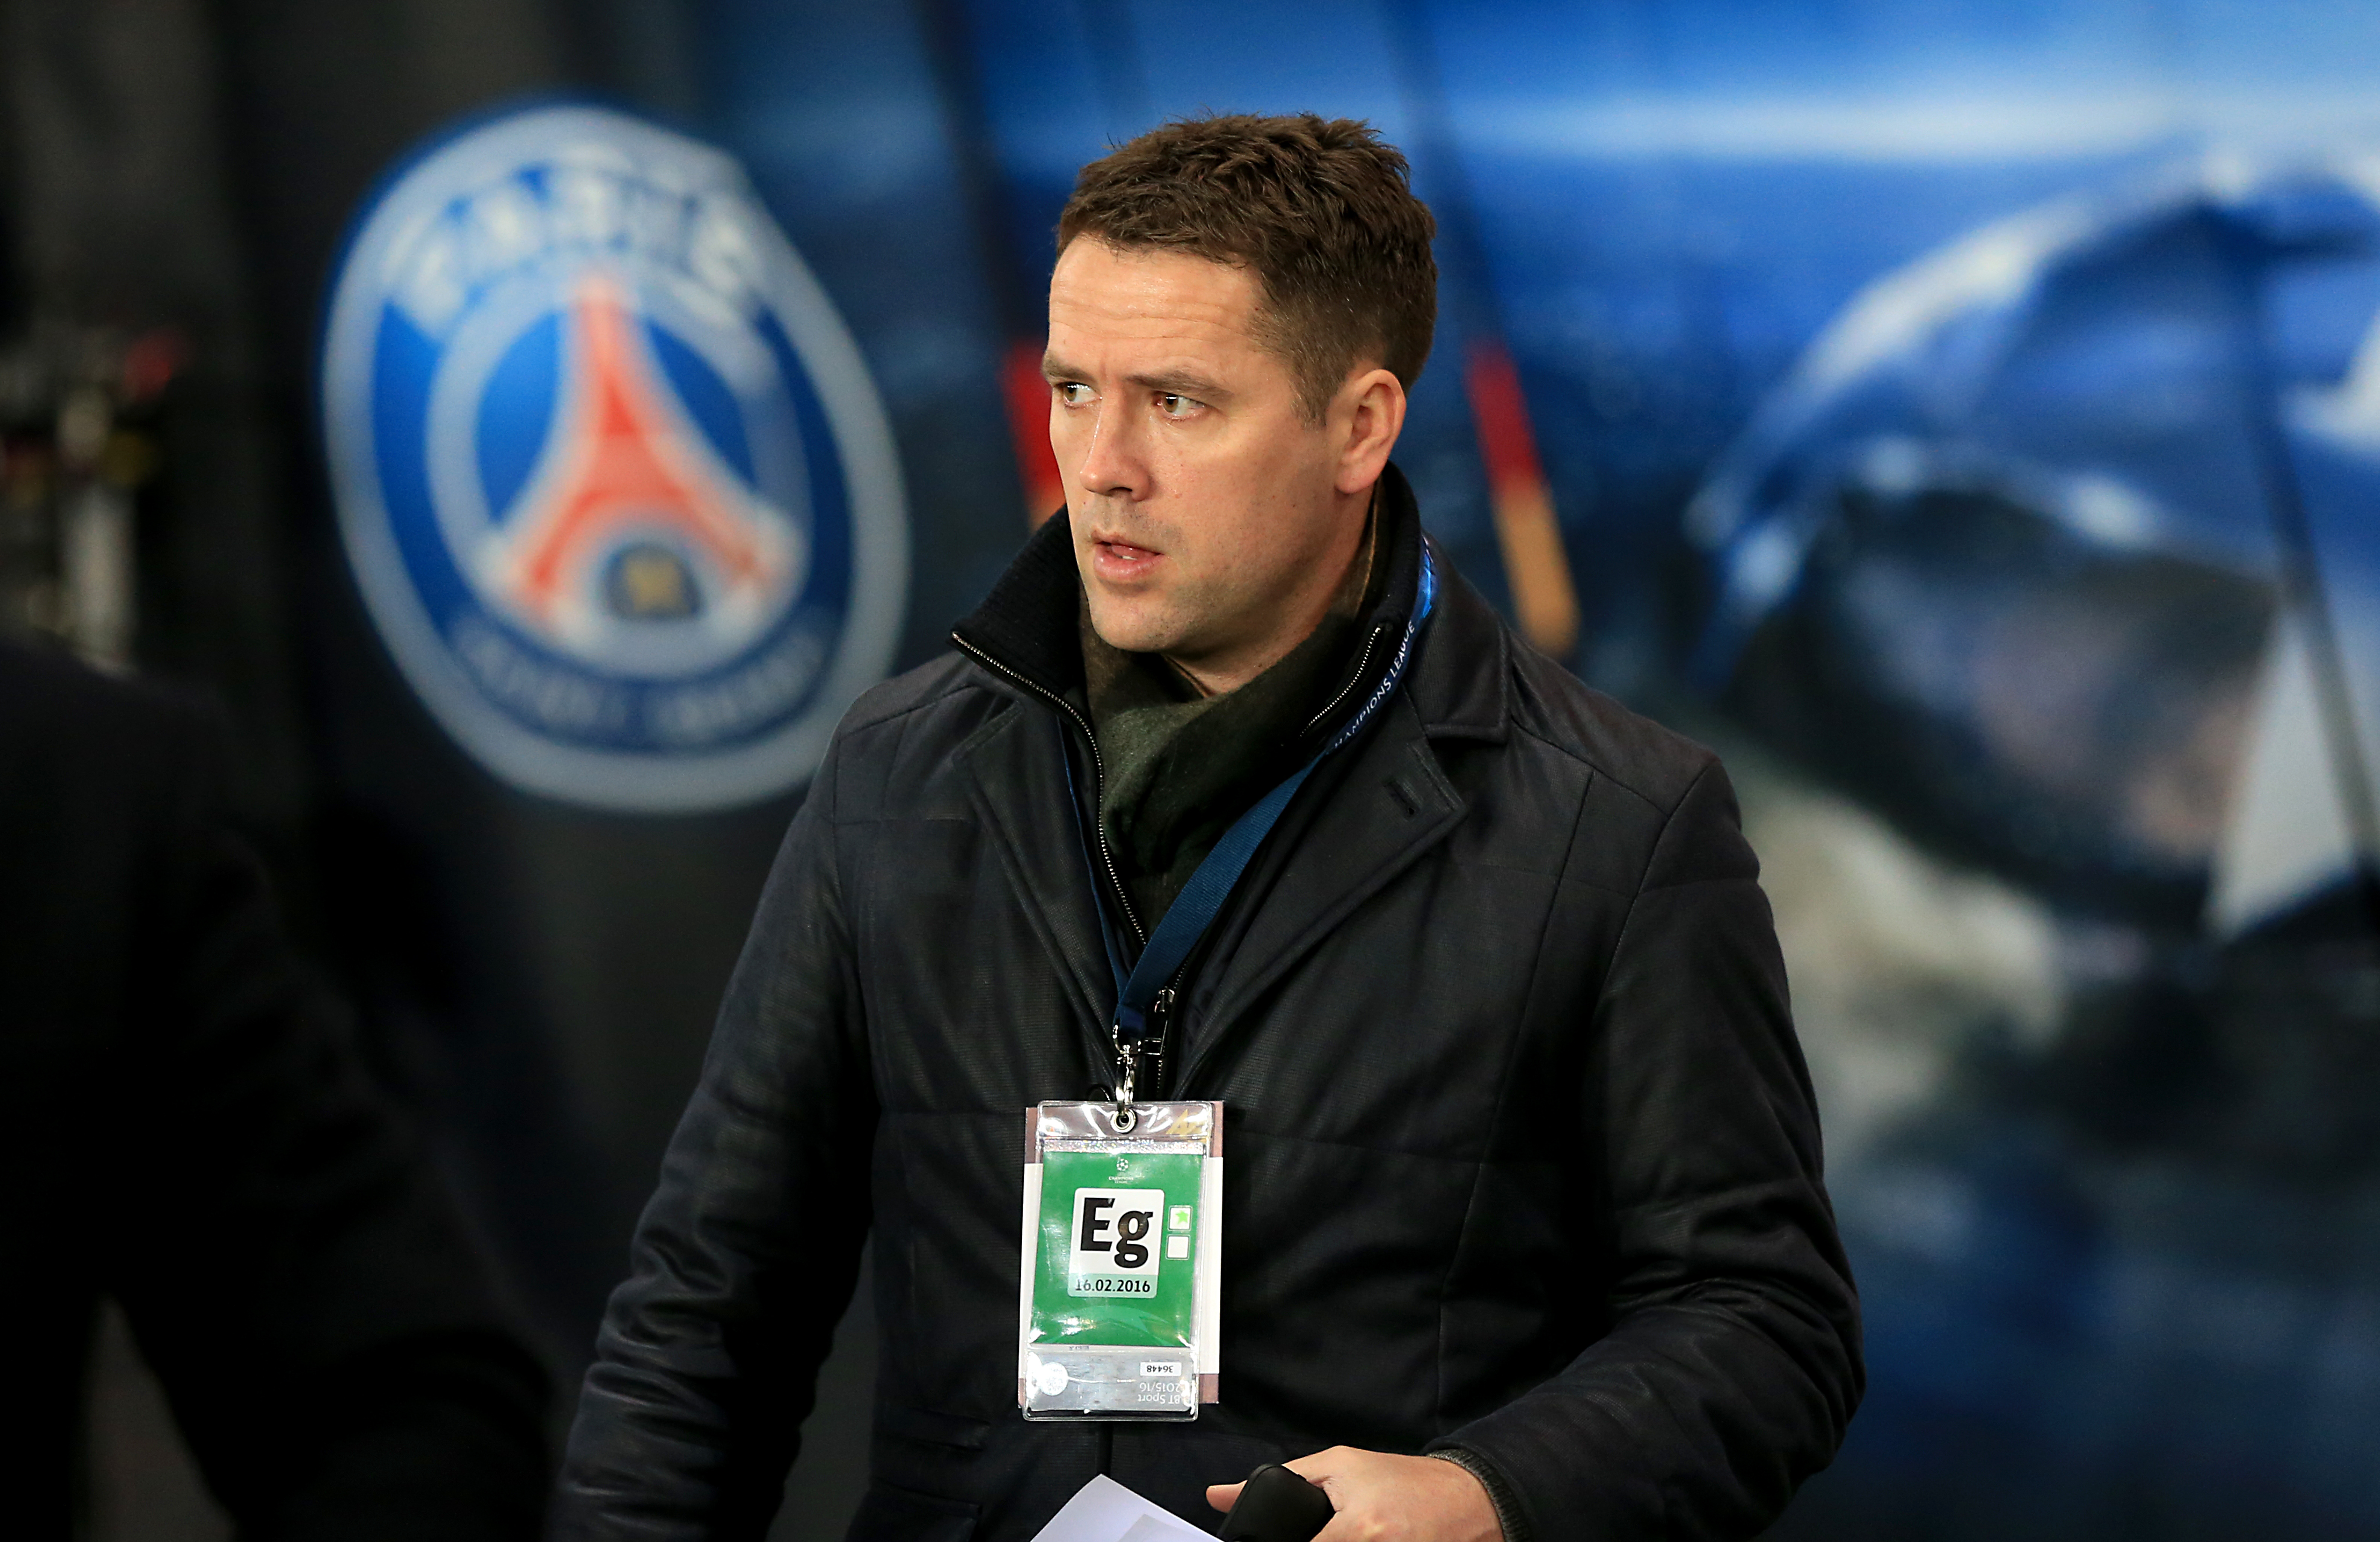 Michael Owen Branded 'Disrespectful' After Posting Picture Of Ronaldo On Twitter